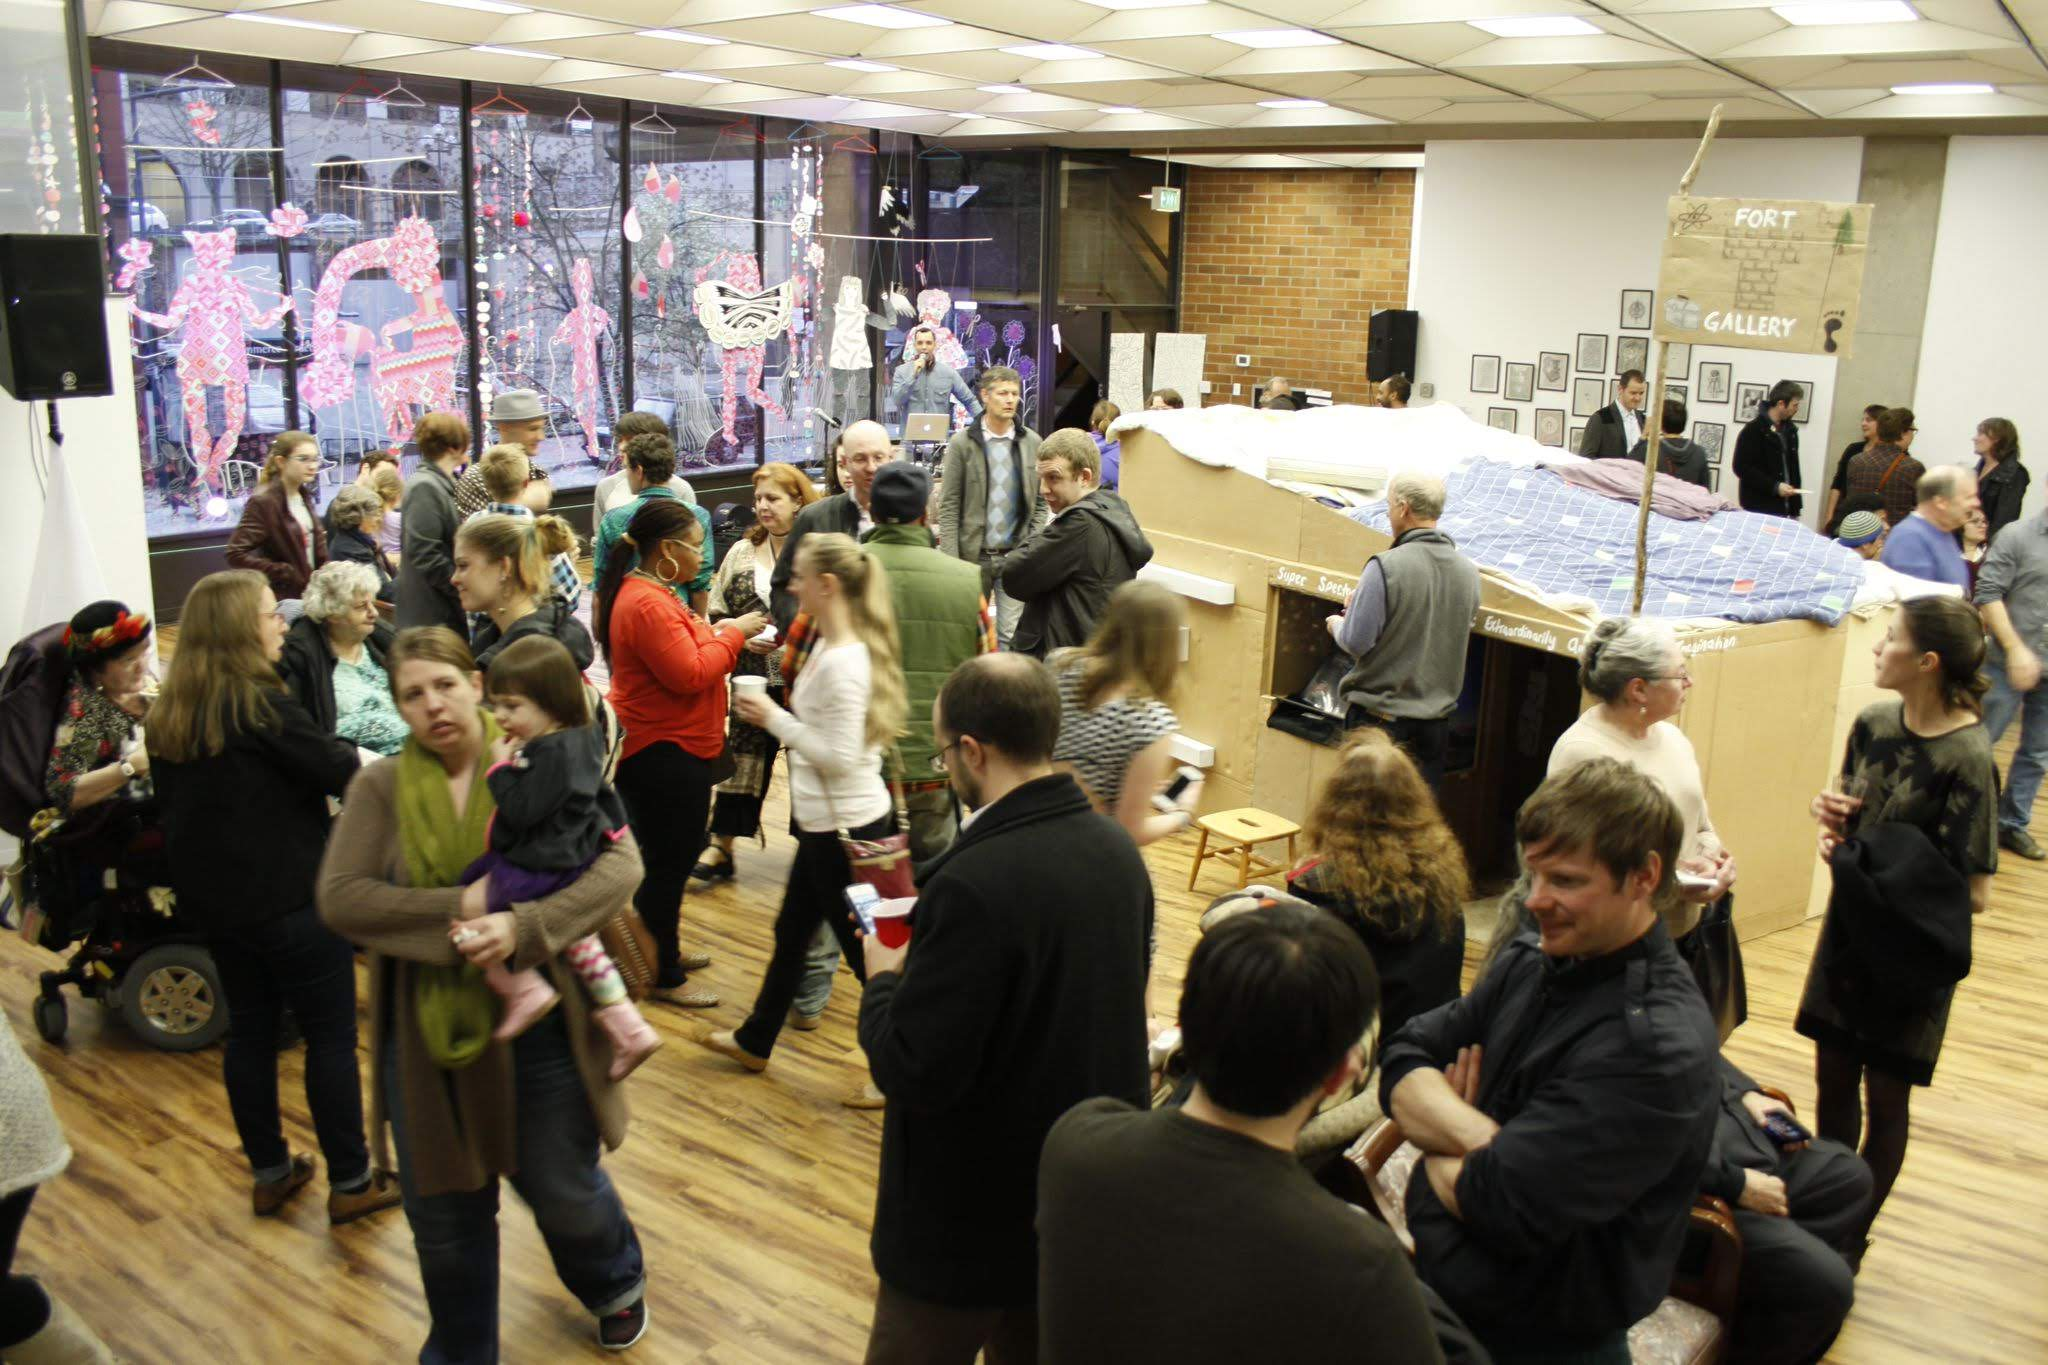 The Fort Gallery @ The 1120 Creative House - 2012